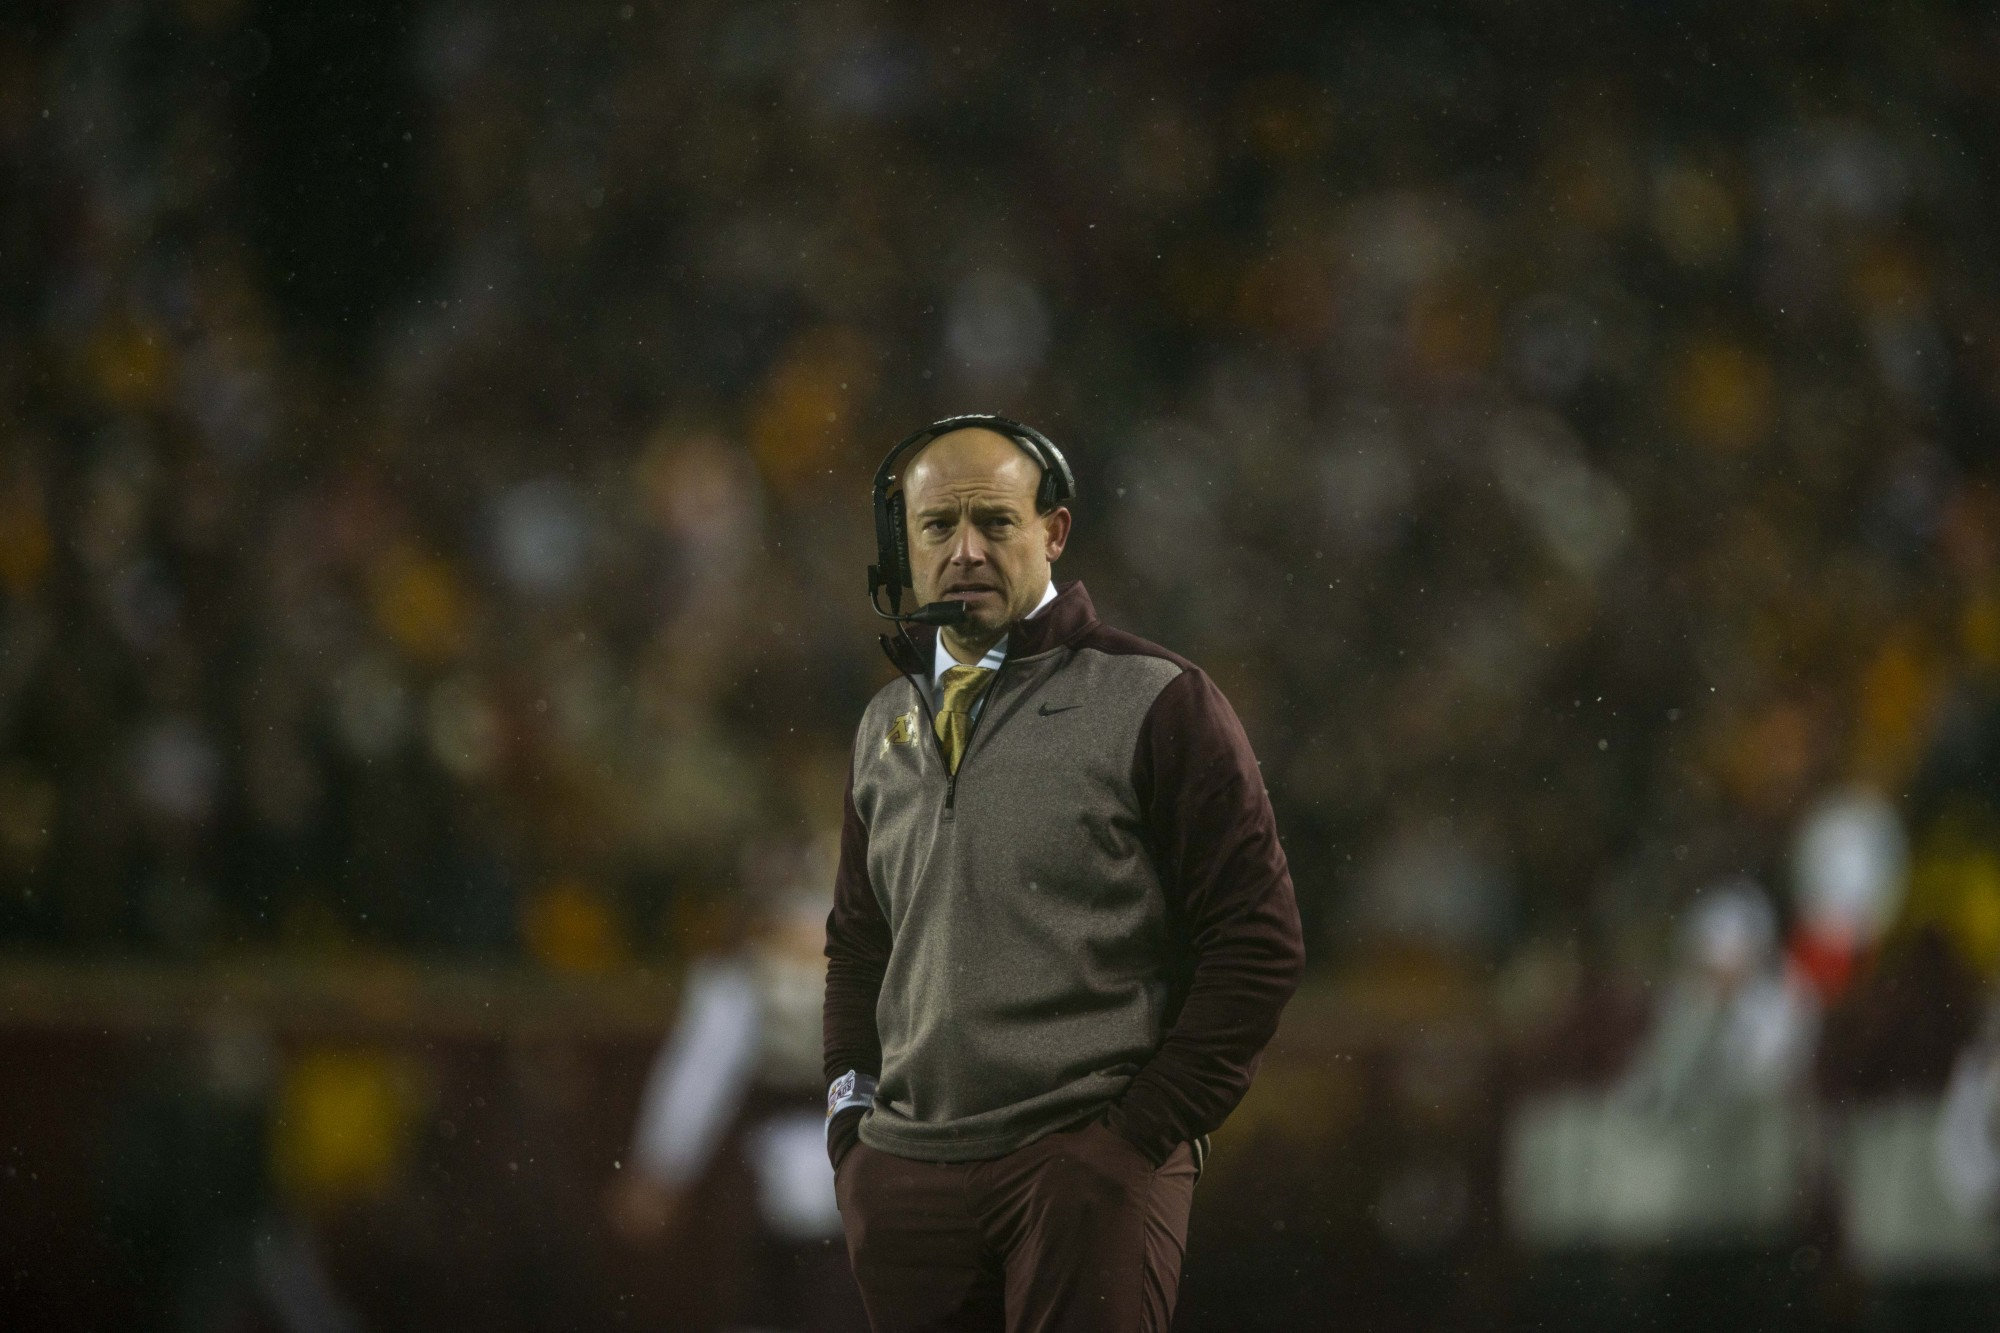 Head coach P.J. Fleck observes the game against the Badgers at TCF Bank Stadium on Saturday, Nov. 30. Wisconsin won 38-17 reclaiming Paul Bunyan's Axe.